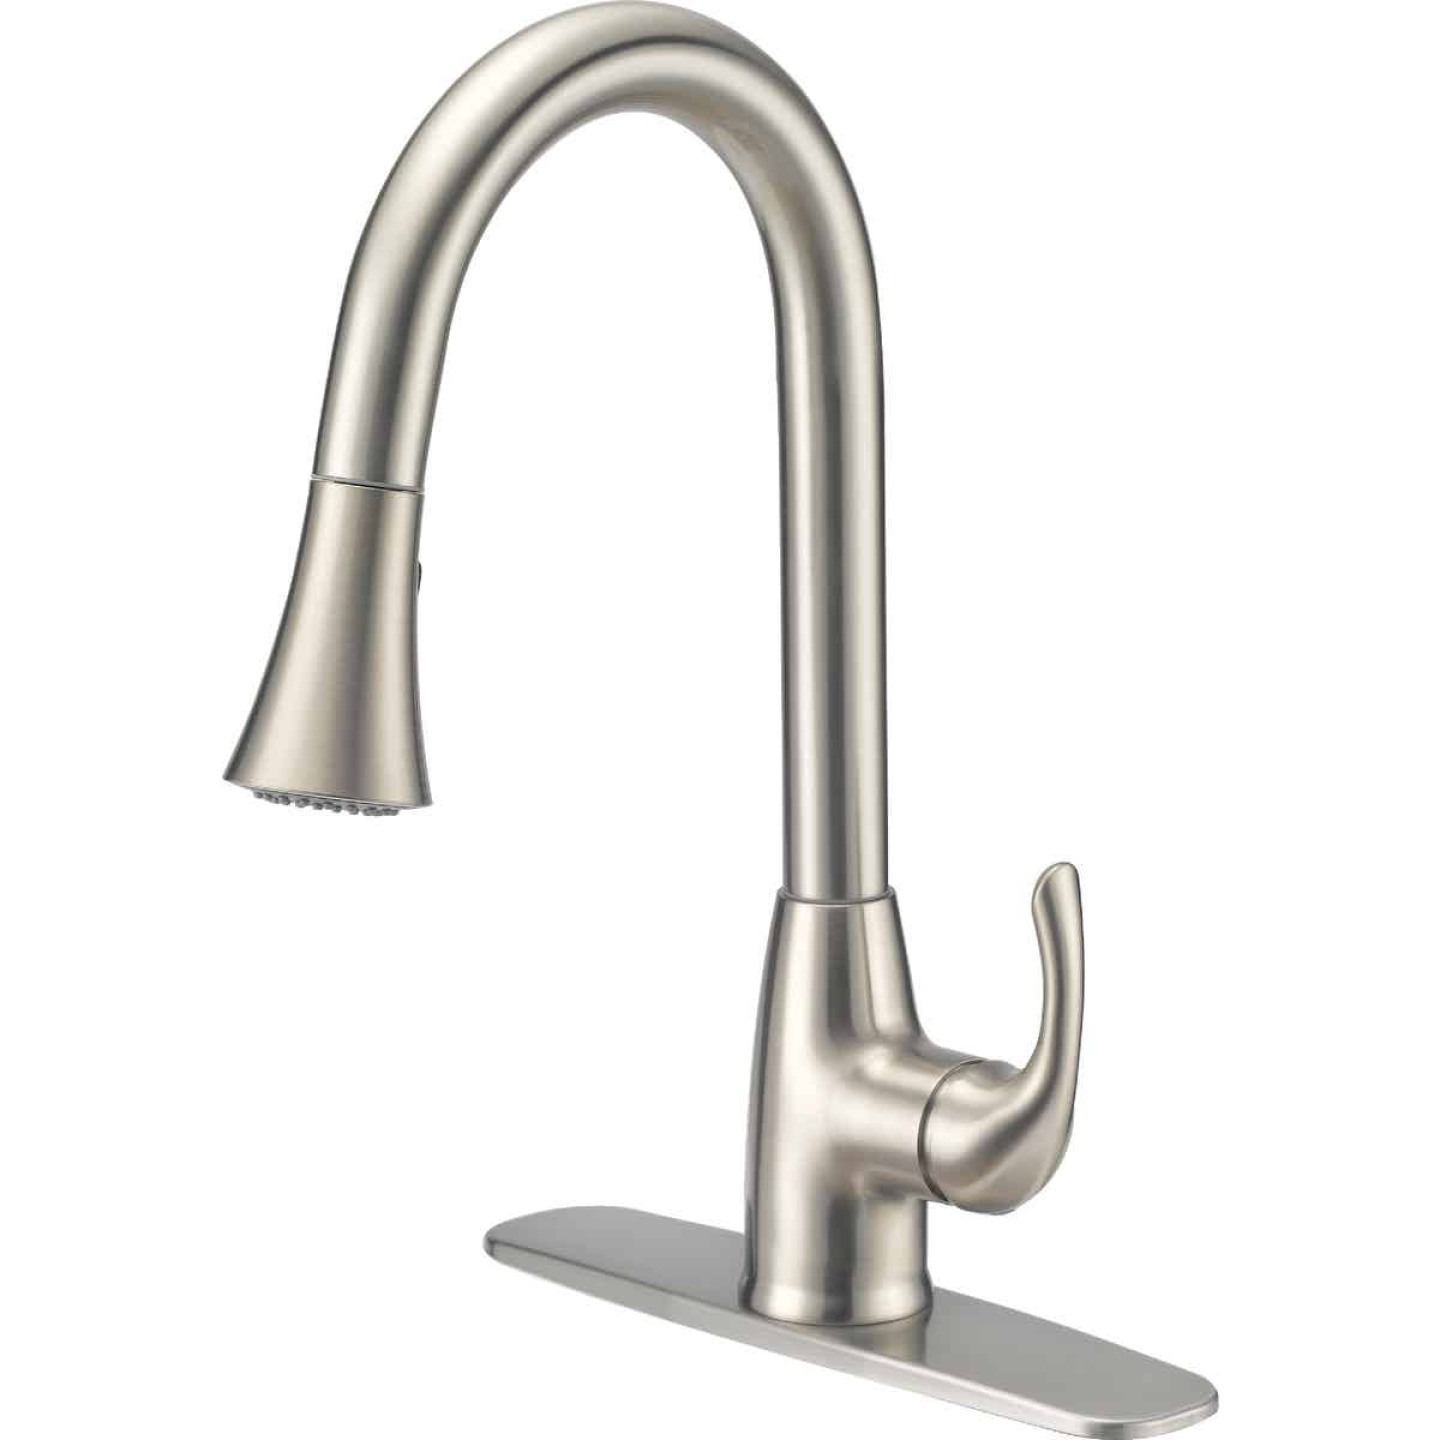 Home Impressions Single Handle Lever Pull-Down Kitchen Faucet with Side Spray, Brushed Nickel Image 1